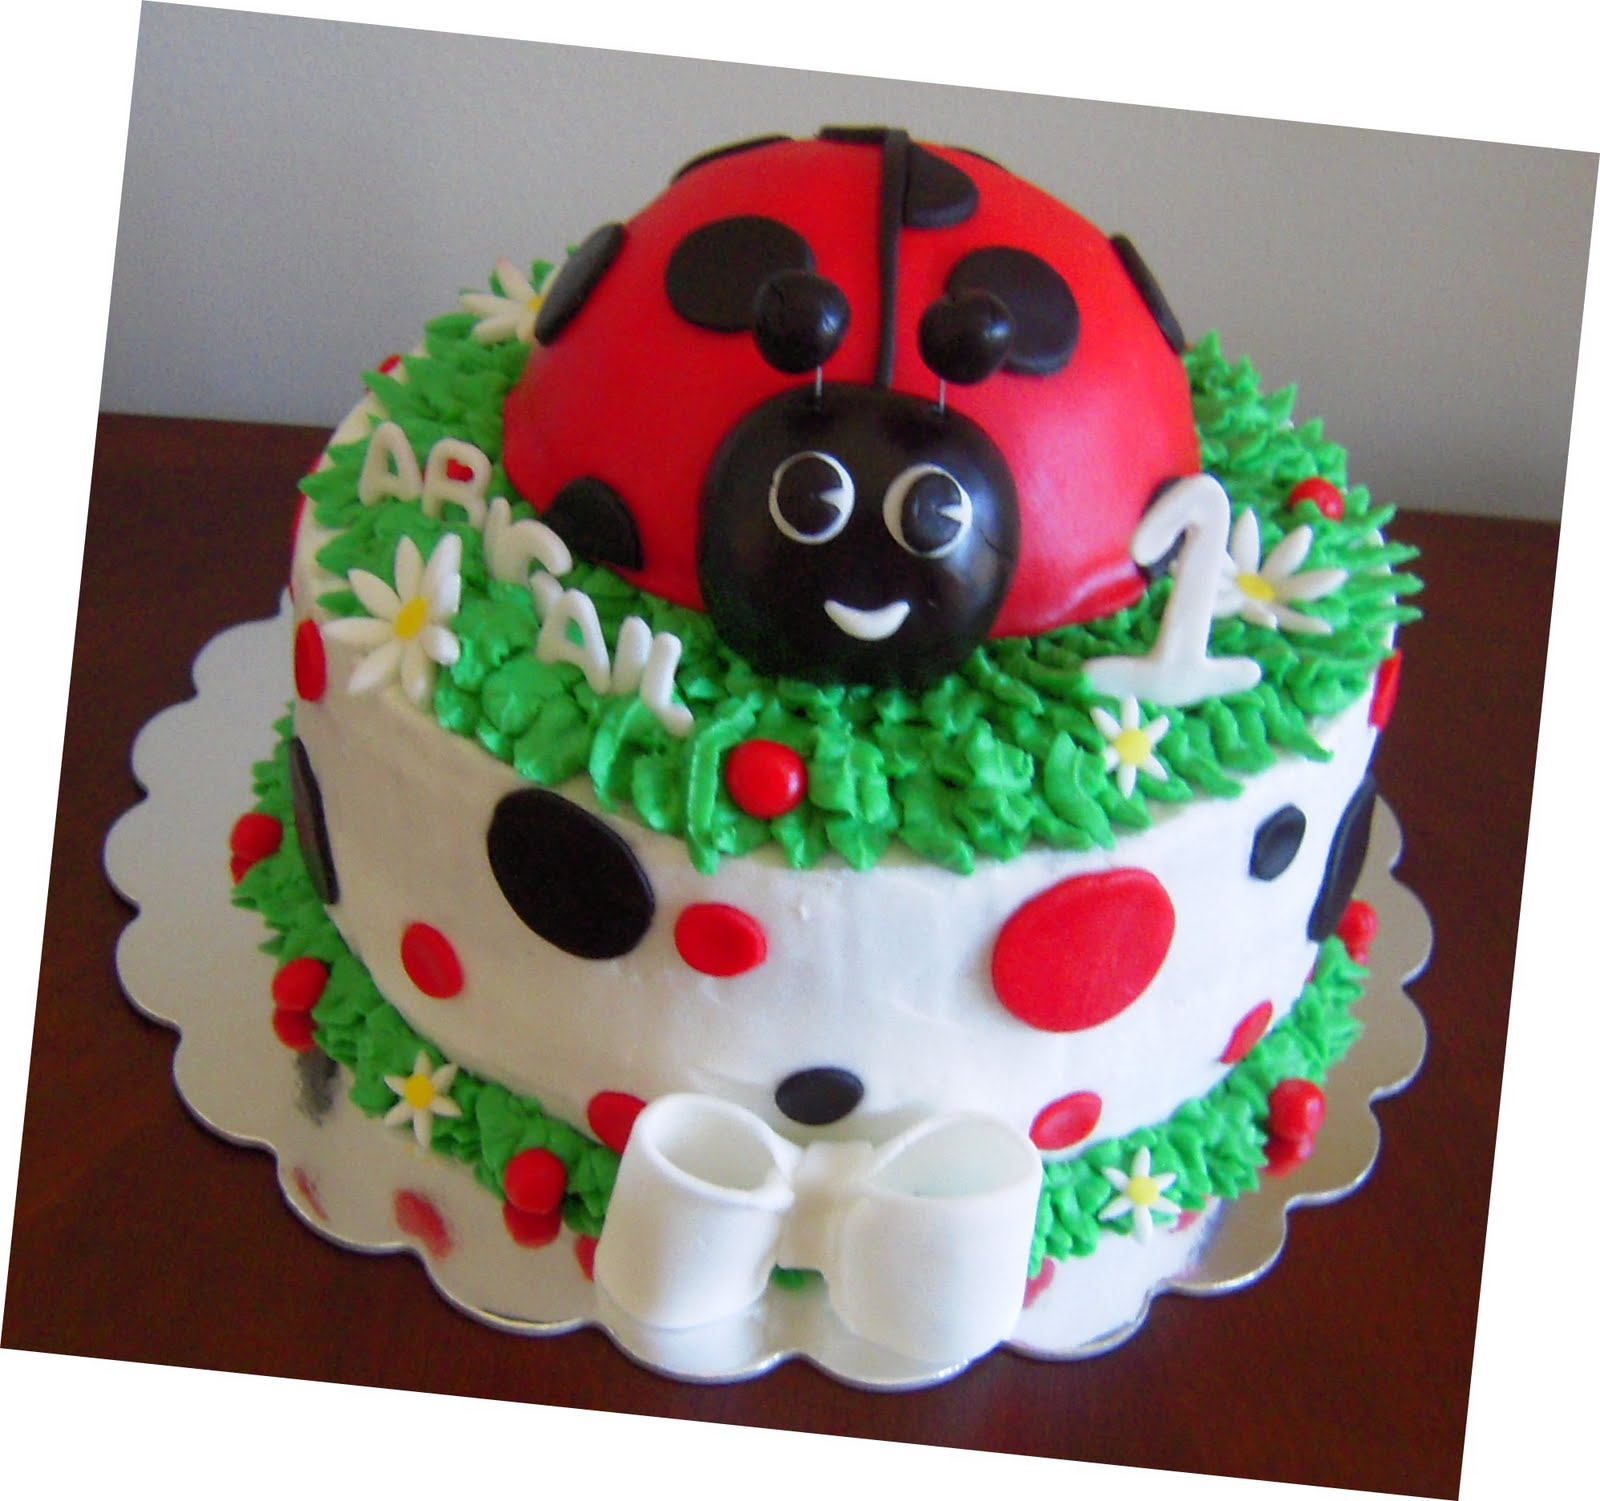 Icing Makes the Cake Lady Bug 1st Birthday Cake